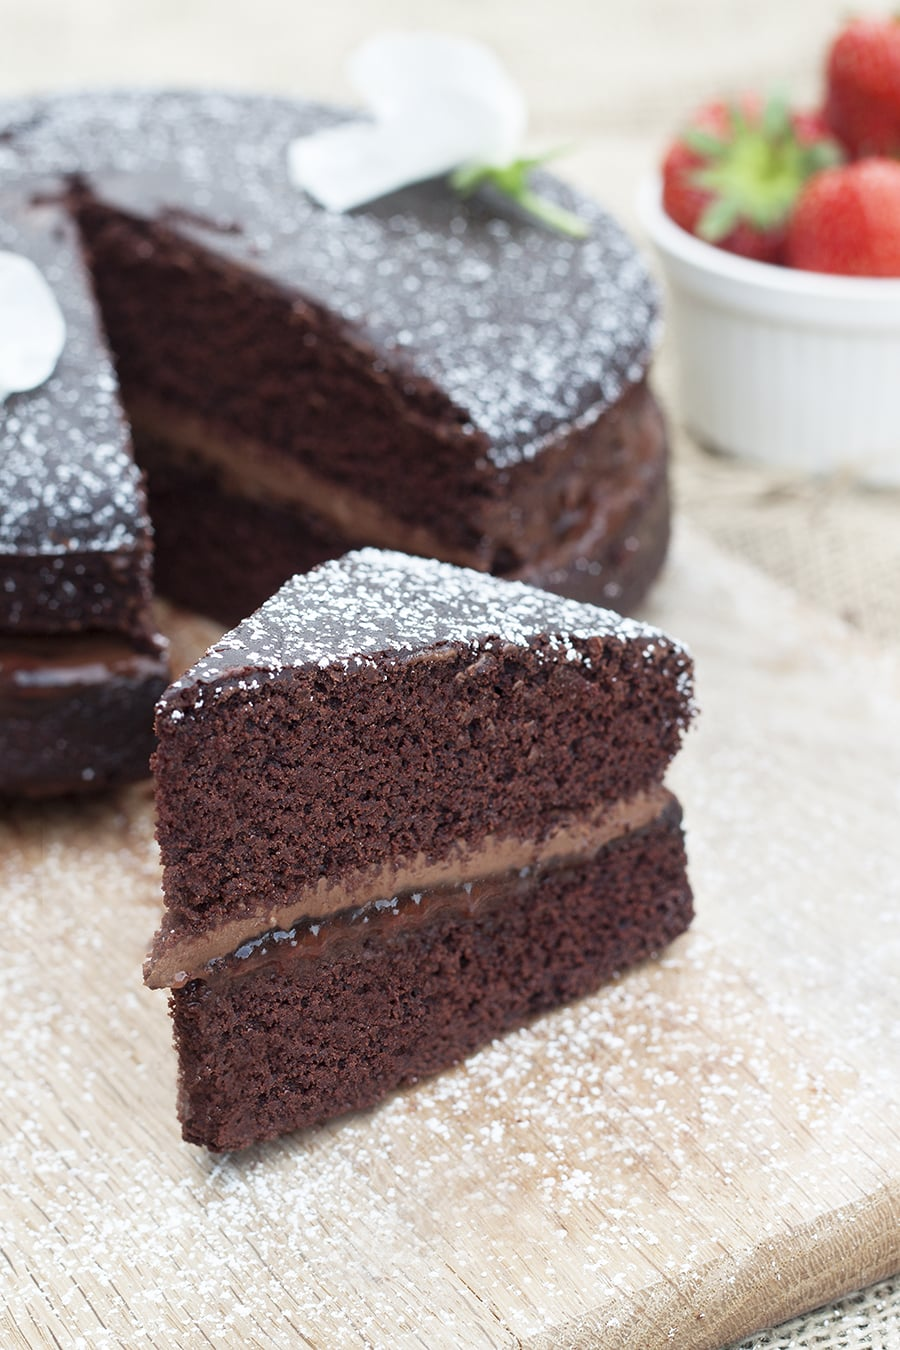 Vegan & Gluten Free Chocolate Cake - A'free from' chocolate cake that uses the healthiest ingredients | cookbakeeat.com